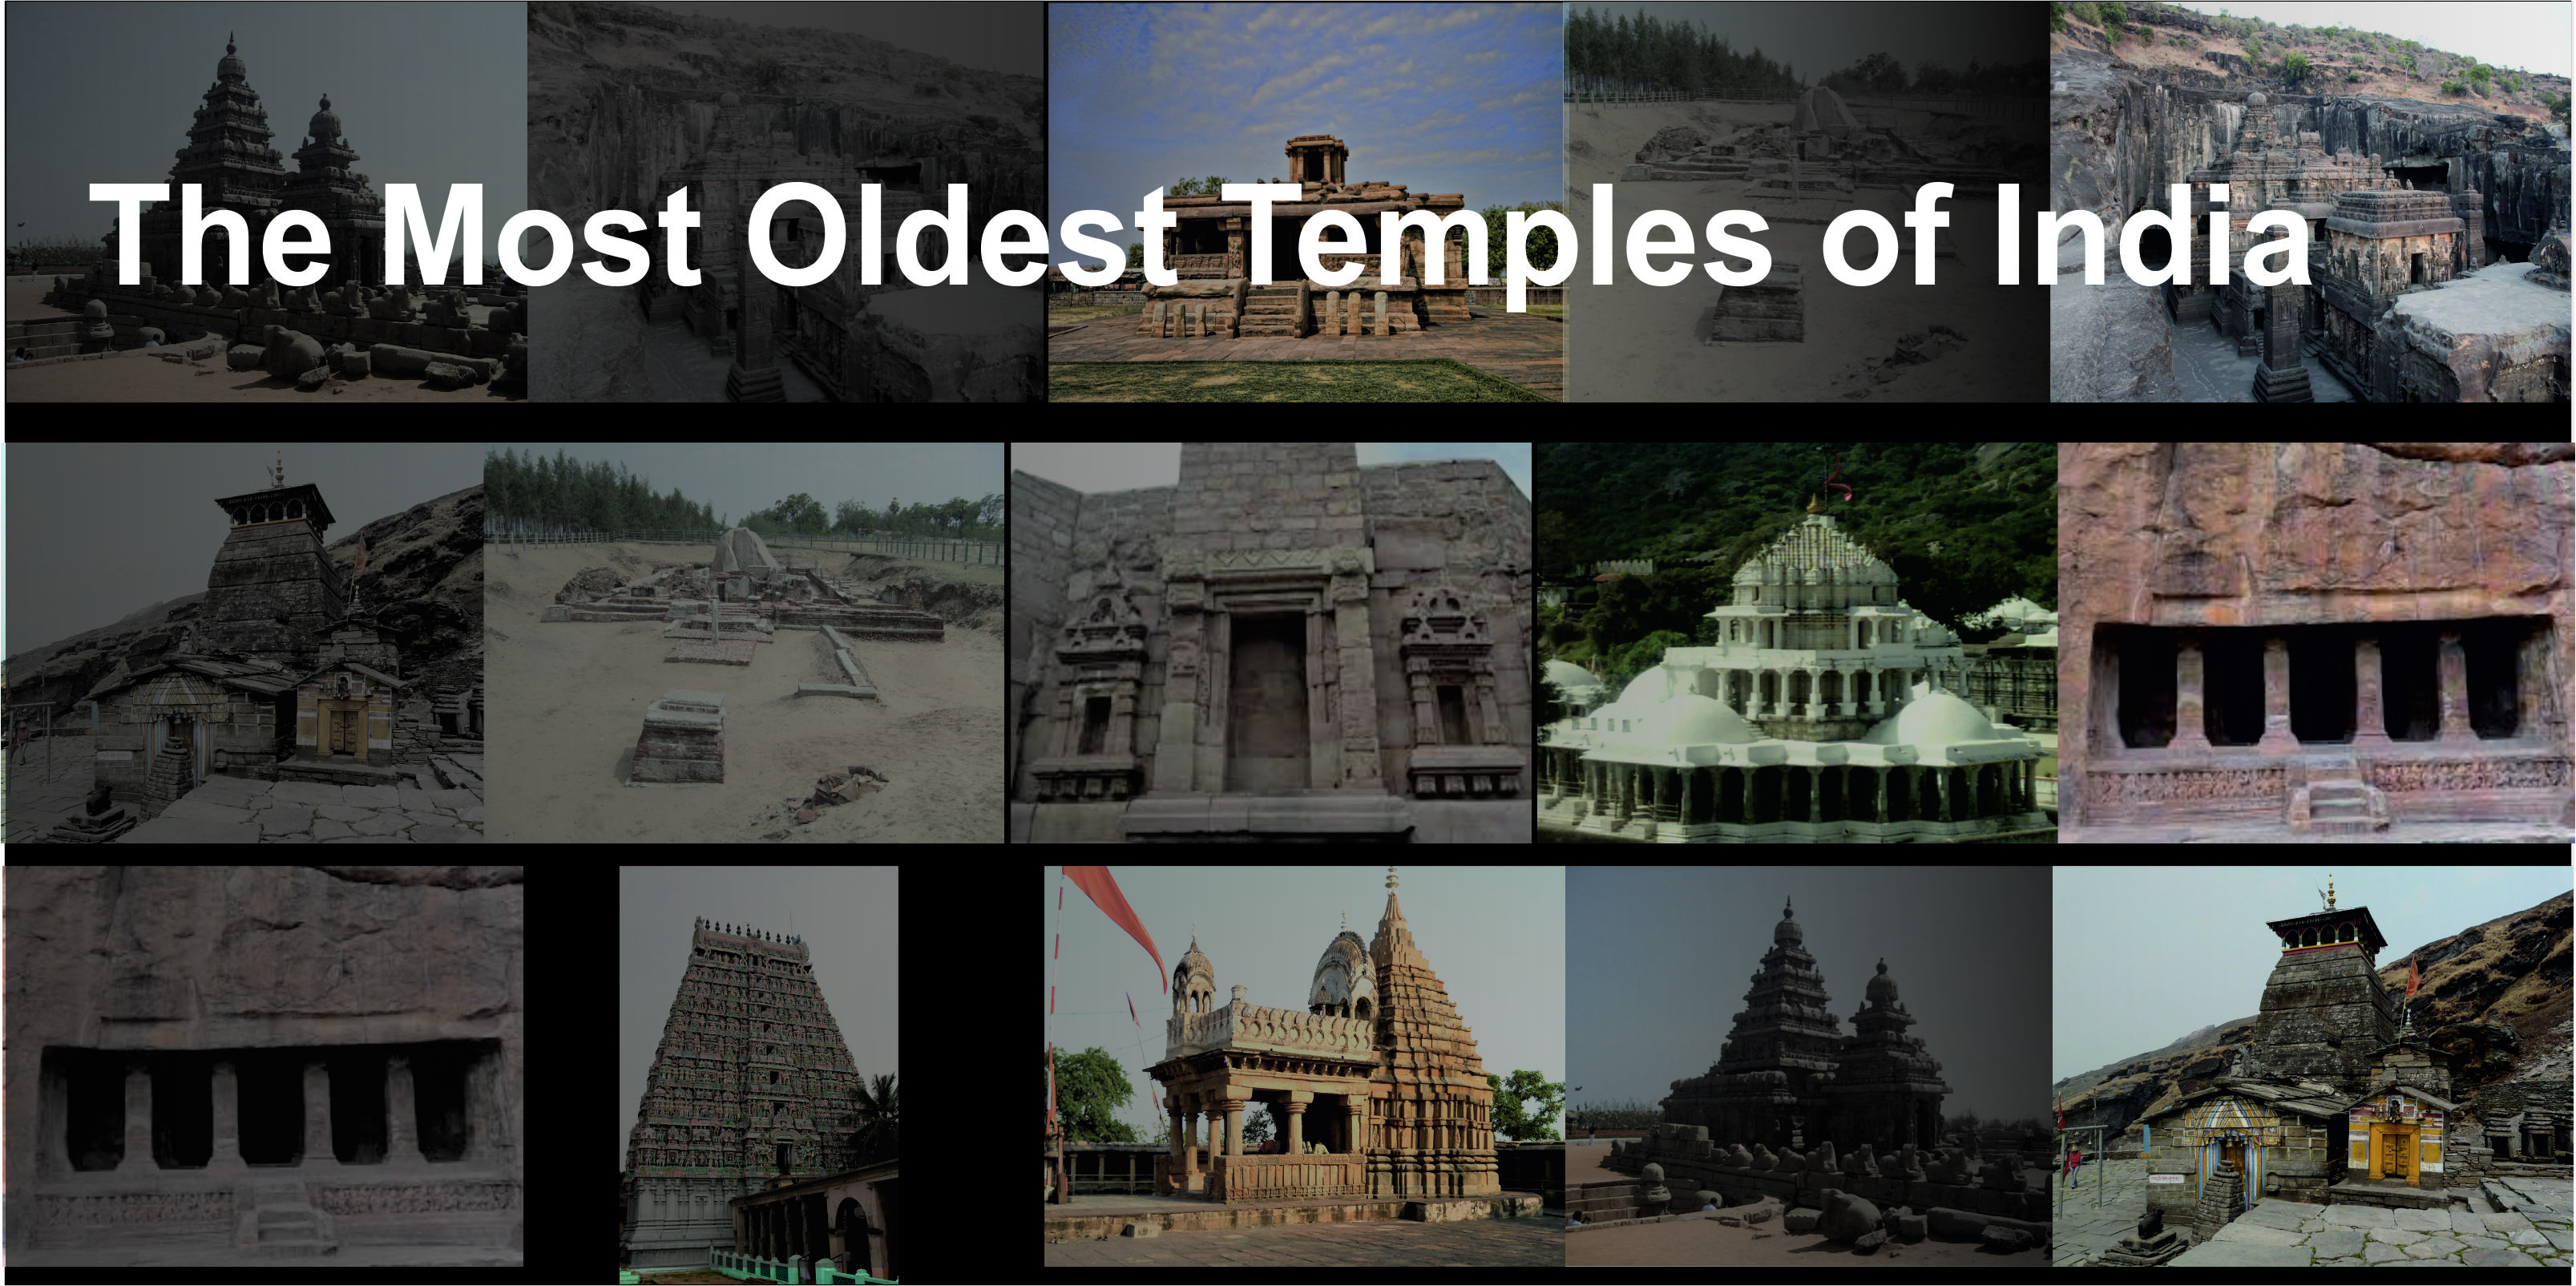 The-most-oldest-temples-of-India